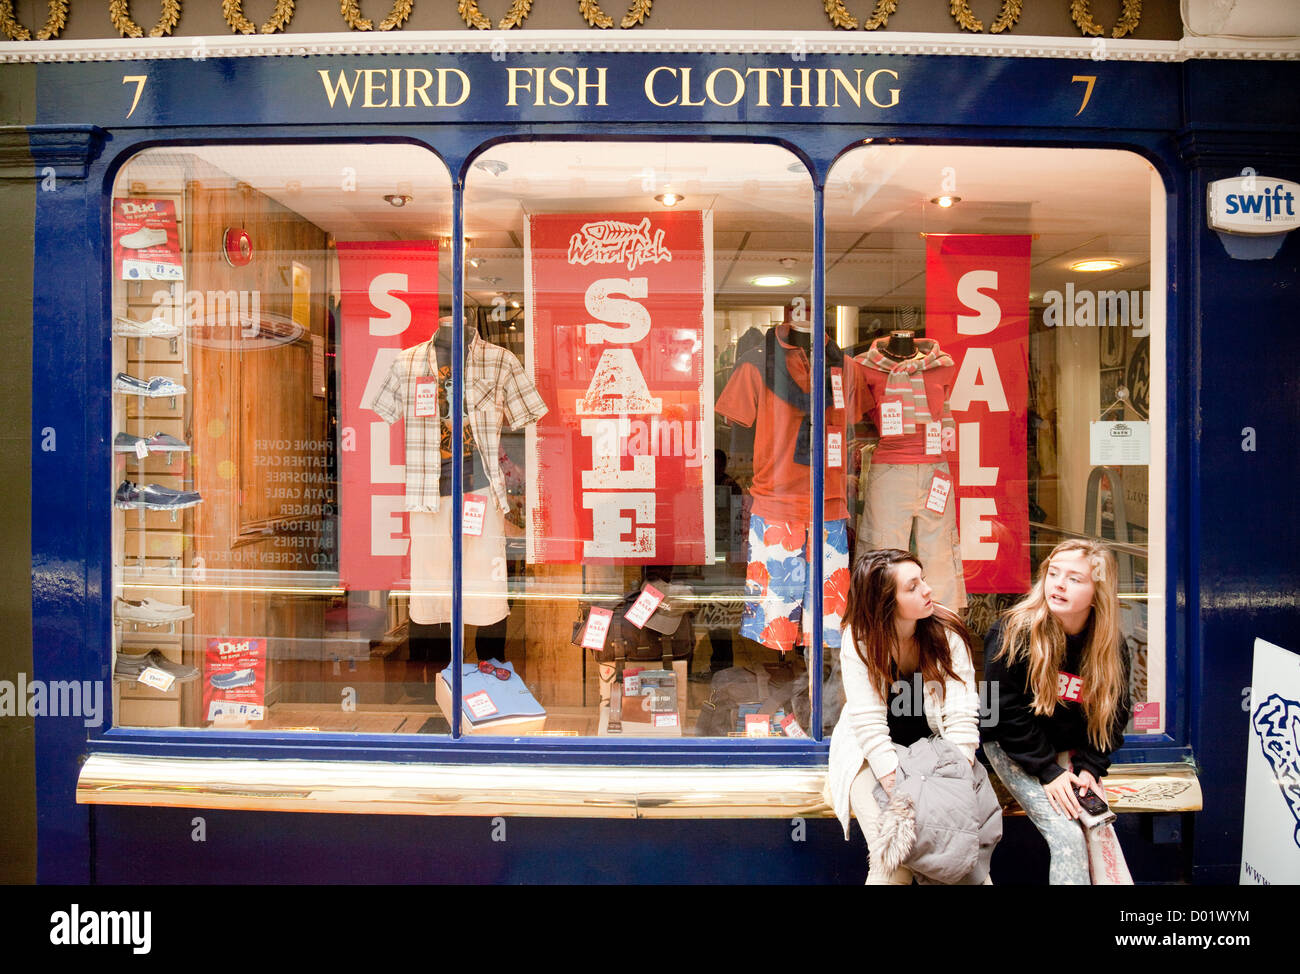 Two teenage girls outside the Weird Fish clothing store shop, Bath ...